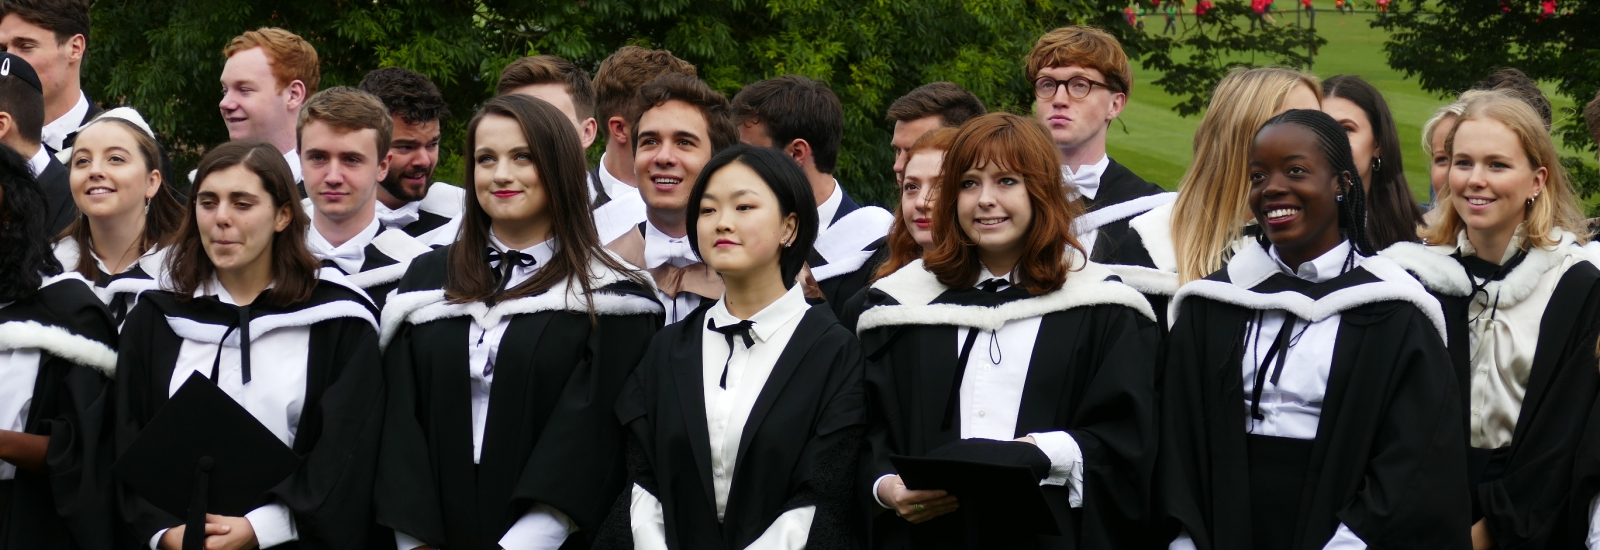 New graduates following their graduation ceremony